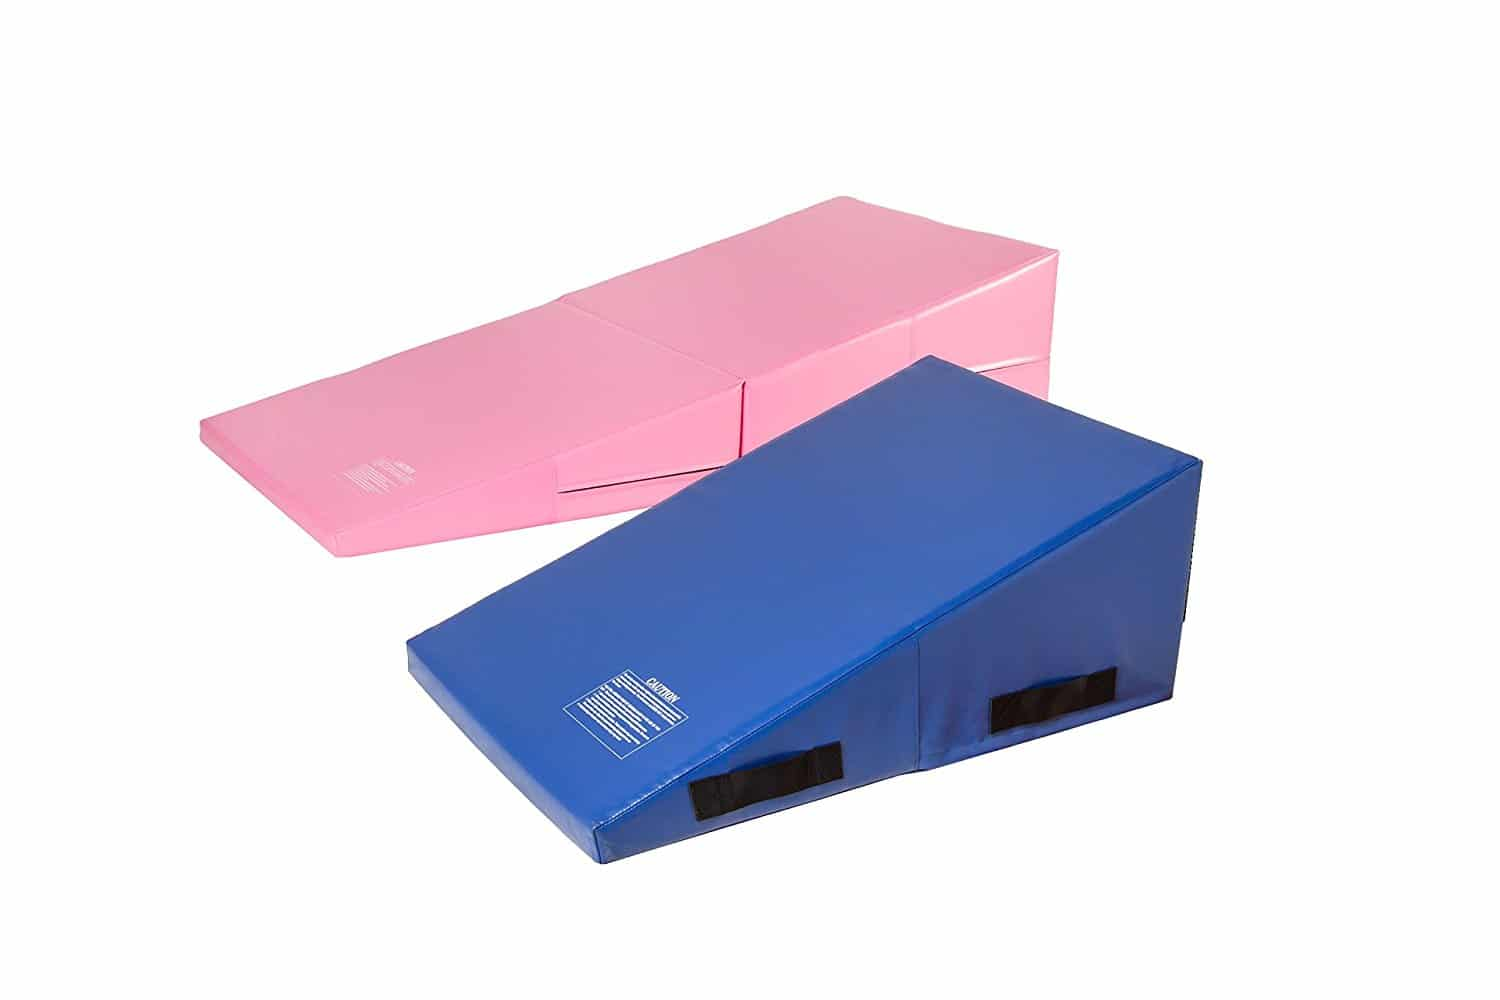 addition pin mats x l mat w extra wedge this cheese for great any learning when skill a gymnastics that you is little the s new incline need mancino boost